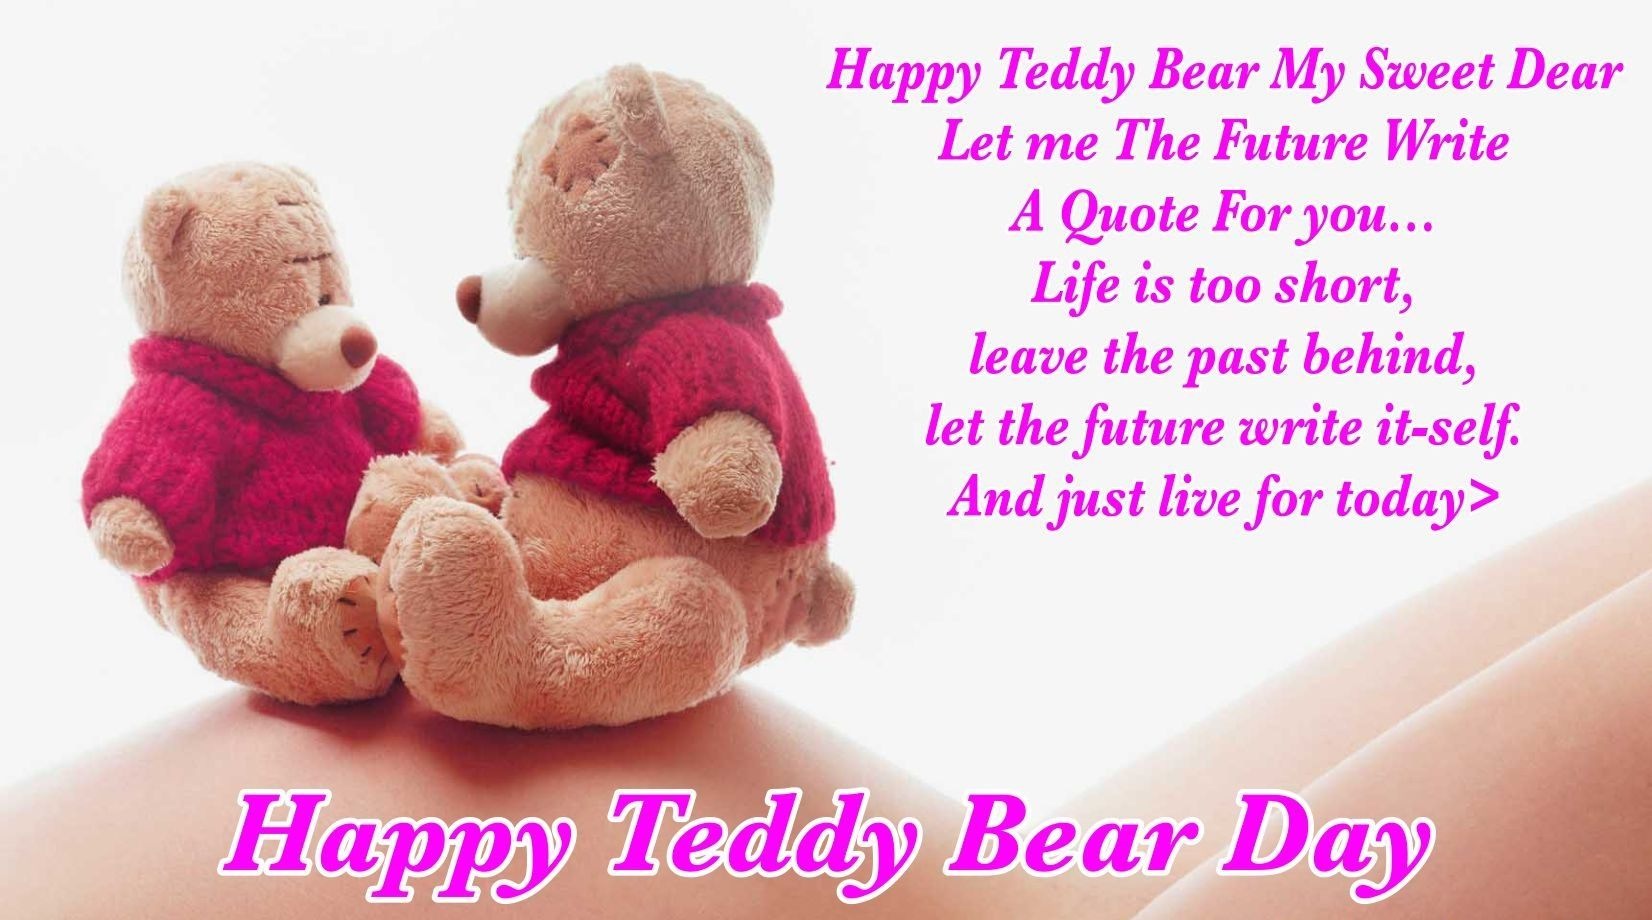 Happy Teddy-Day